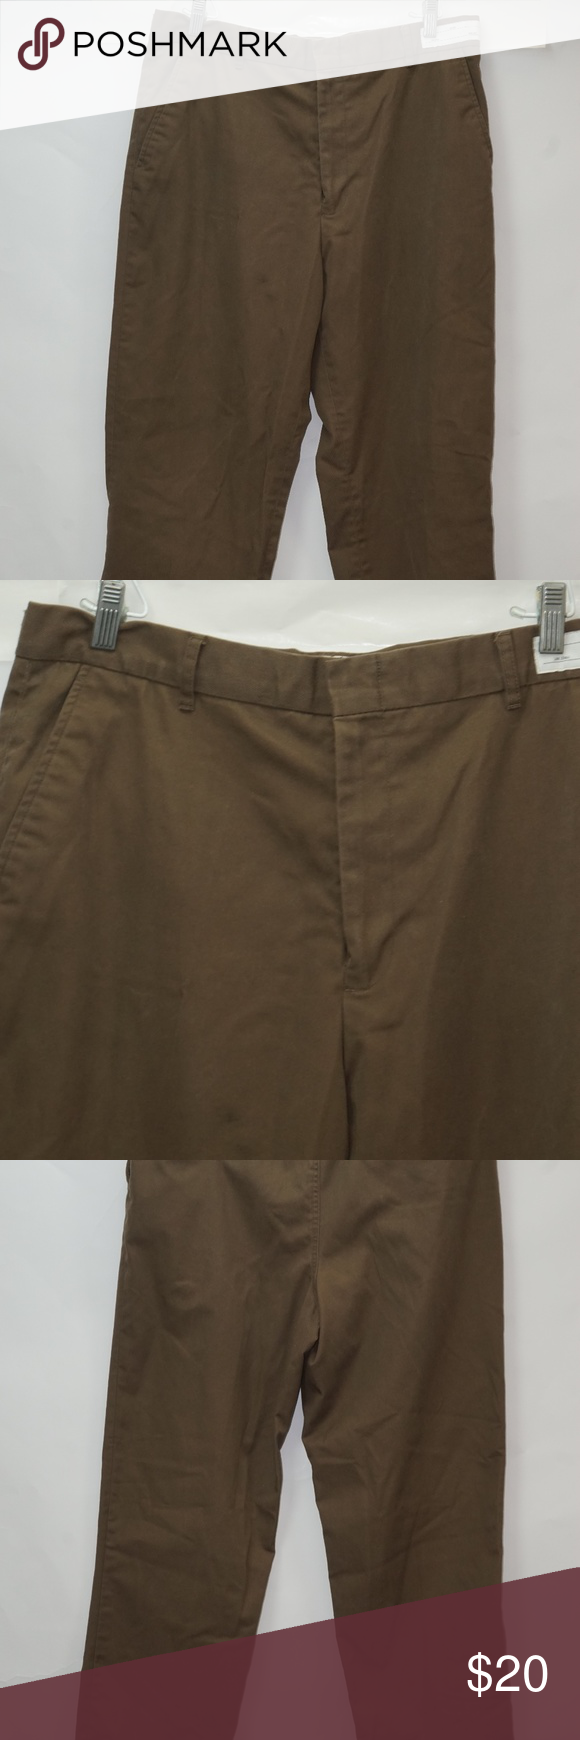 MENS UPS UNIFORM PANTS BY TWIN HILL MENS UPS UNIFORM PANTS